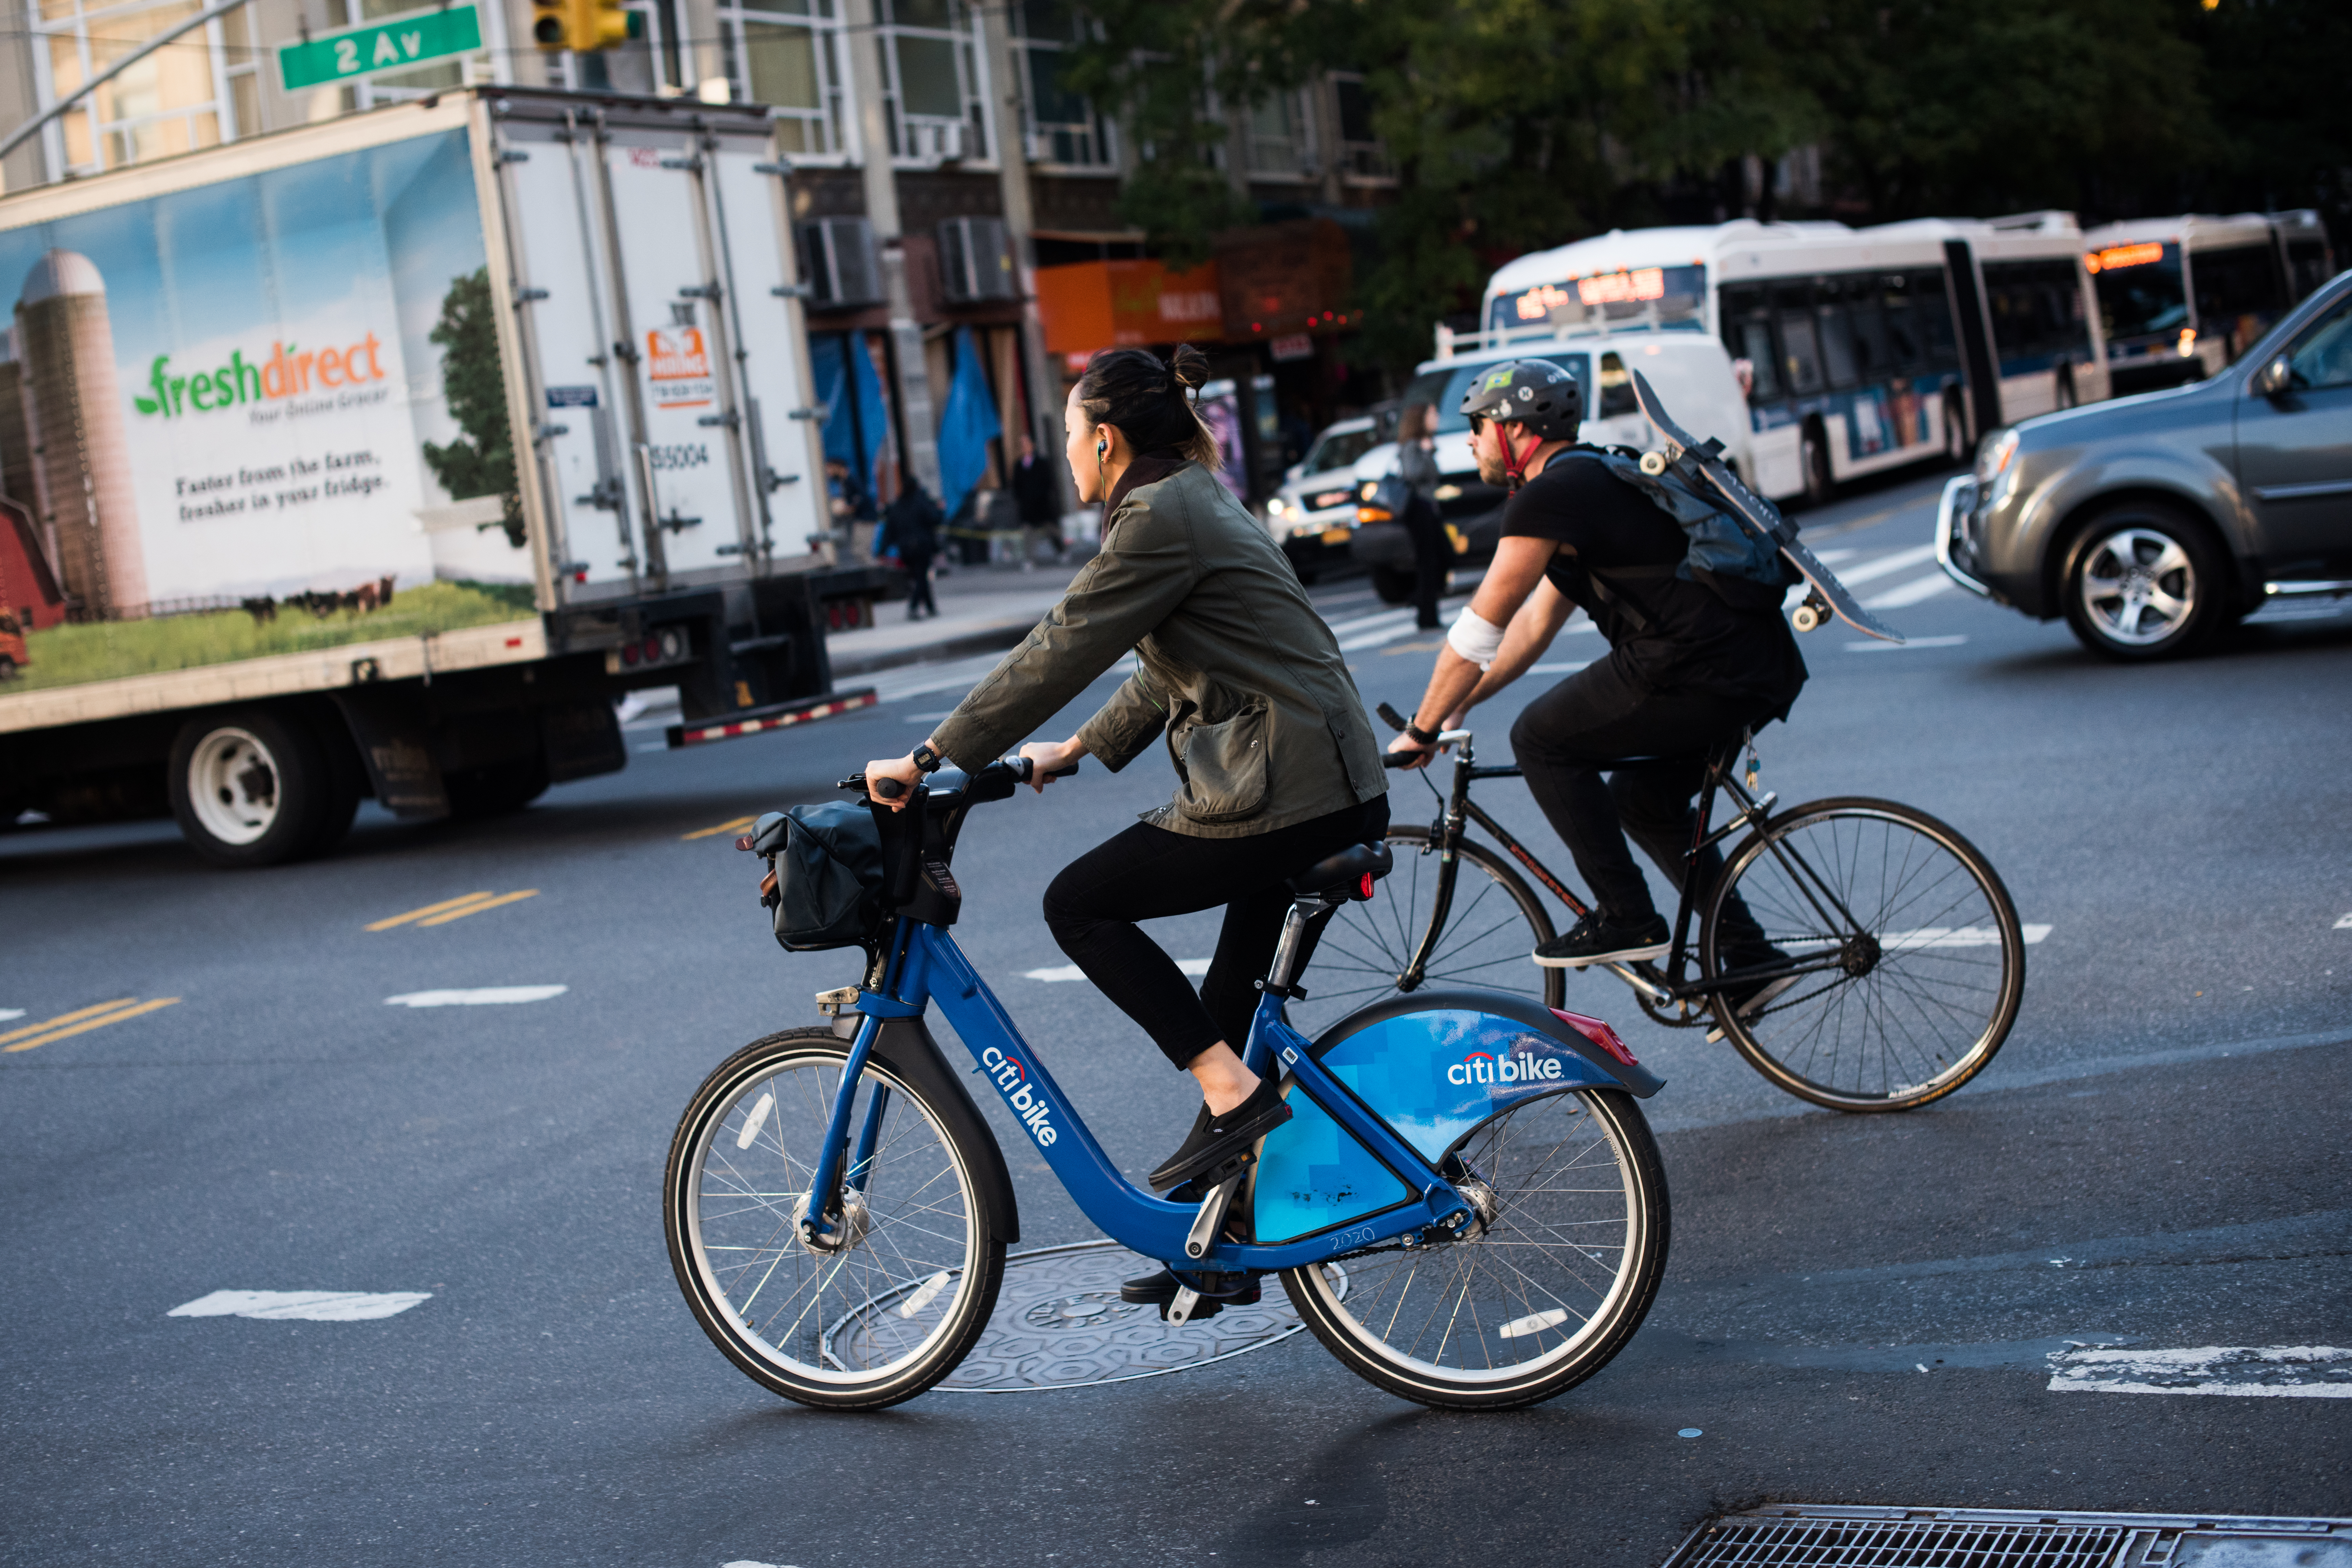 A cyclist rides a Citi Bike in the East Village neighborhood of New York, U.S., on Tuesday, Oct. 11, 2016.